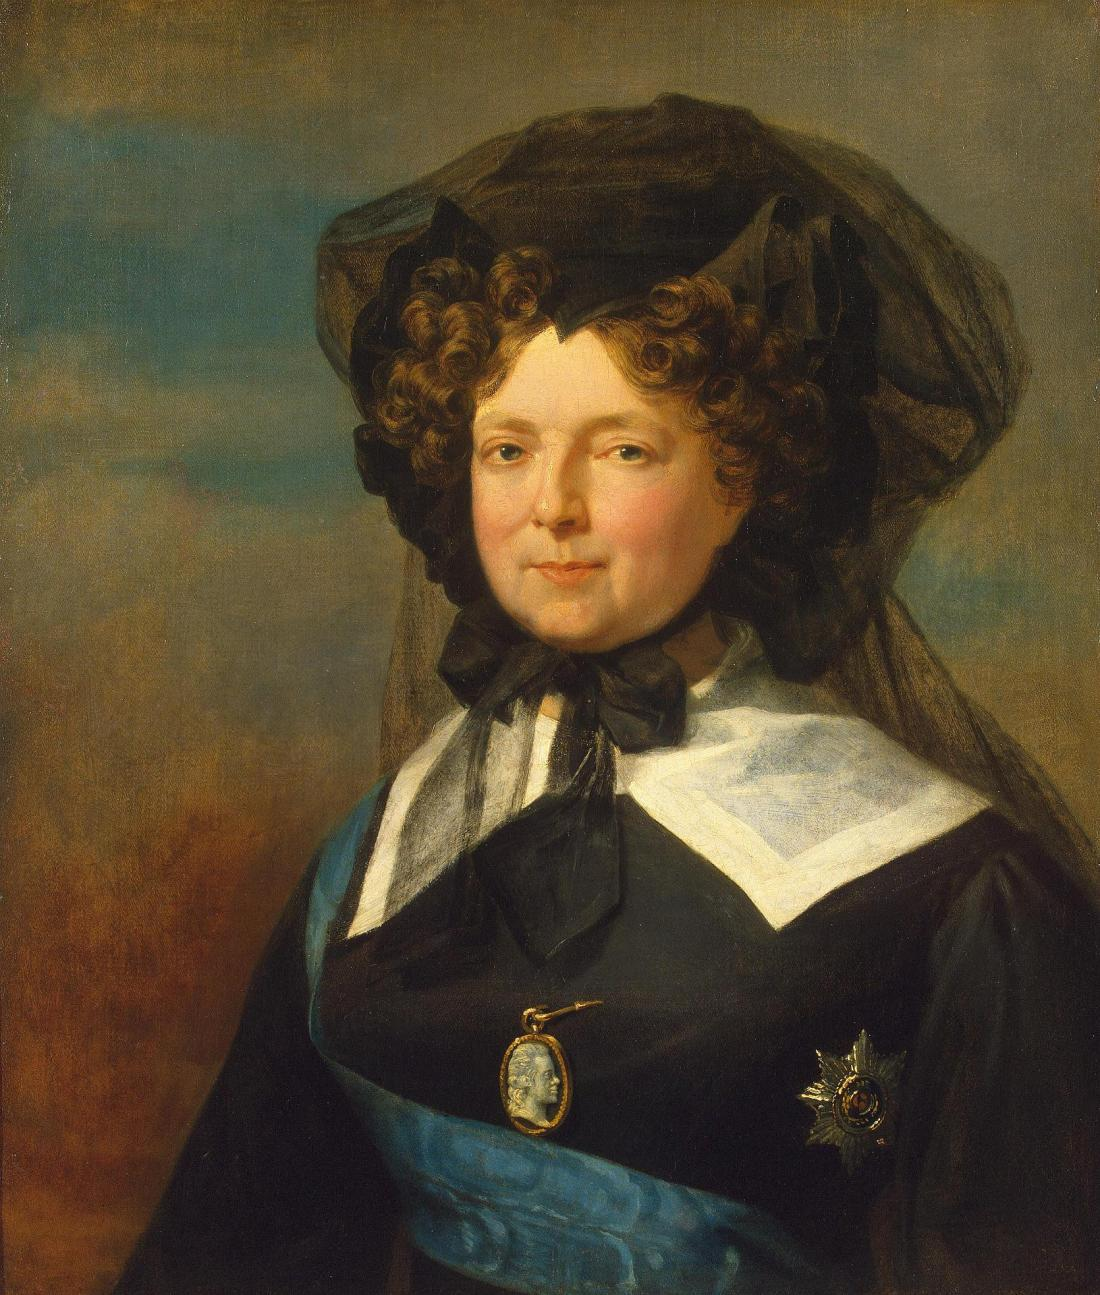 Tsaritsa Marie Feodorovna, widow of Paul I. 1825.